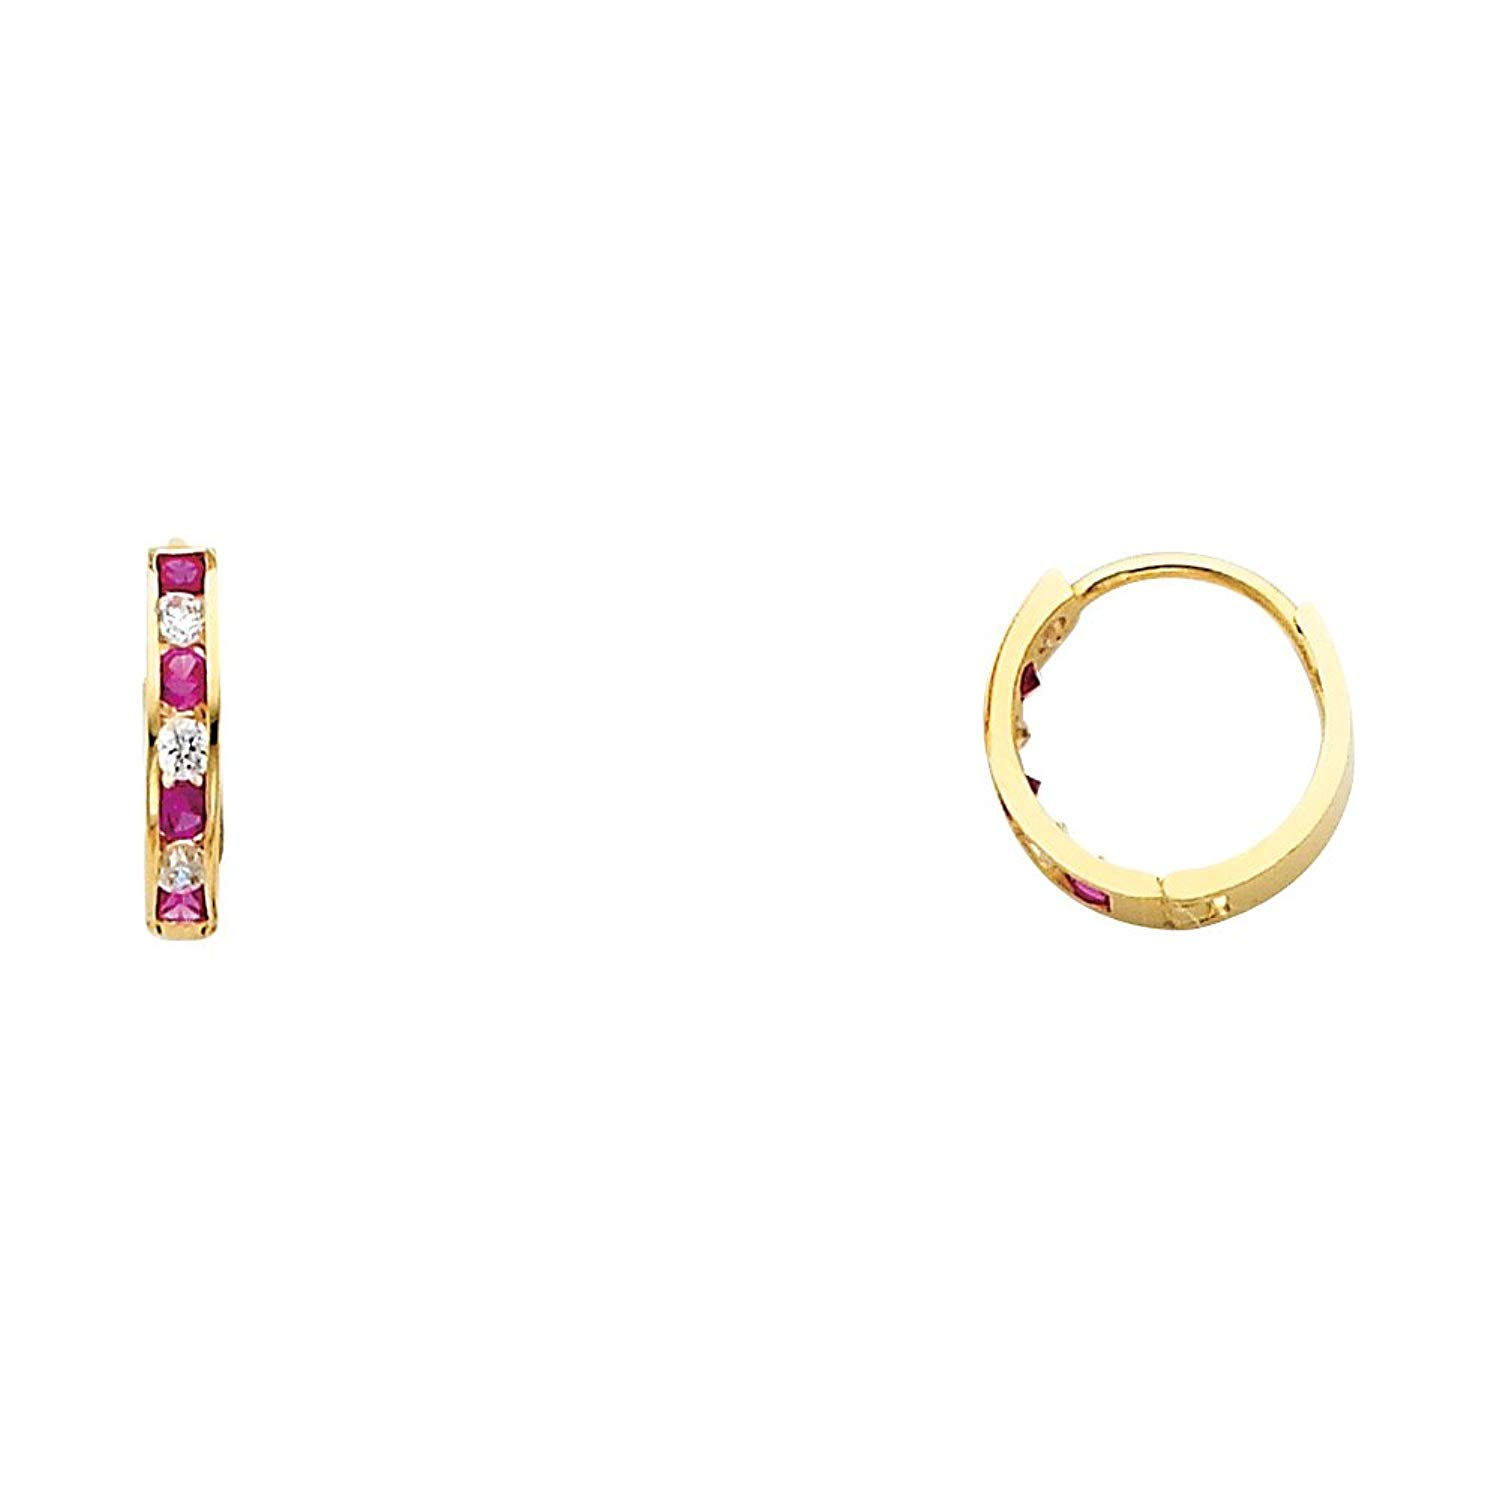 5f7ee65e3 Get Quotations · Solid 14k Yellow Gold CZ Huggie Hoops Earrings Round Red  Huggies CZ Pave Polished Finish Small